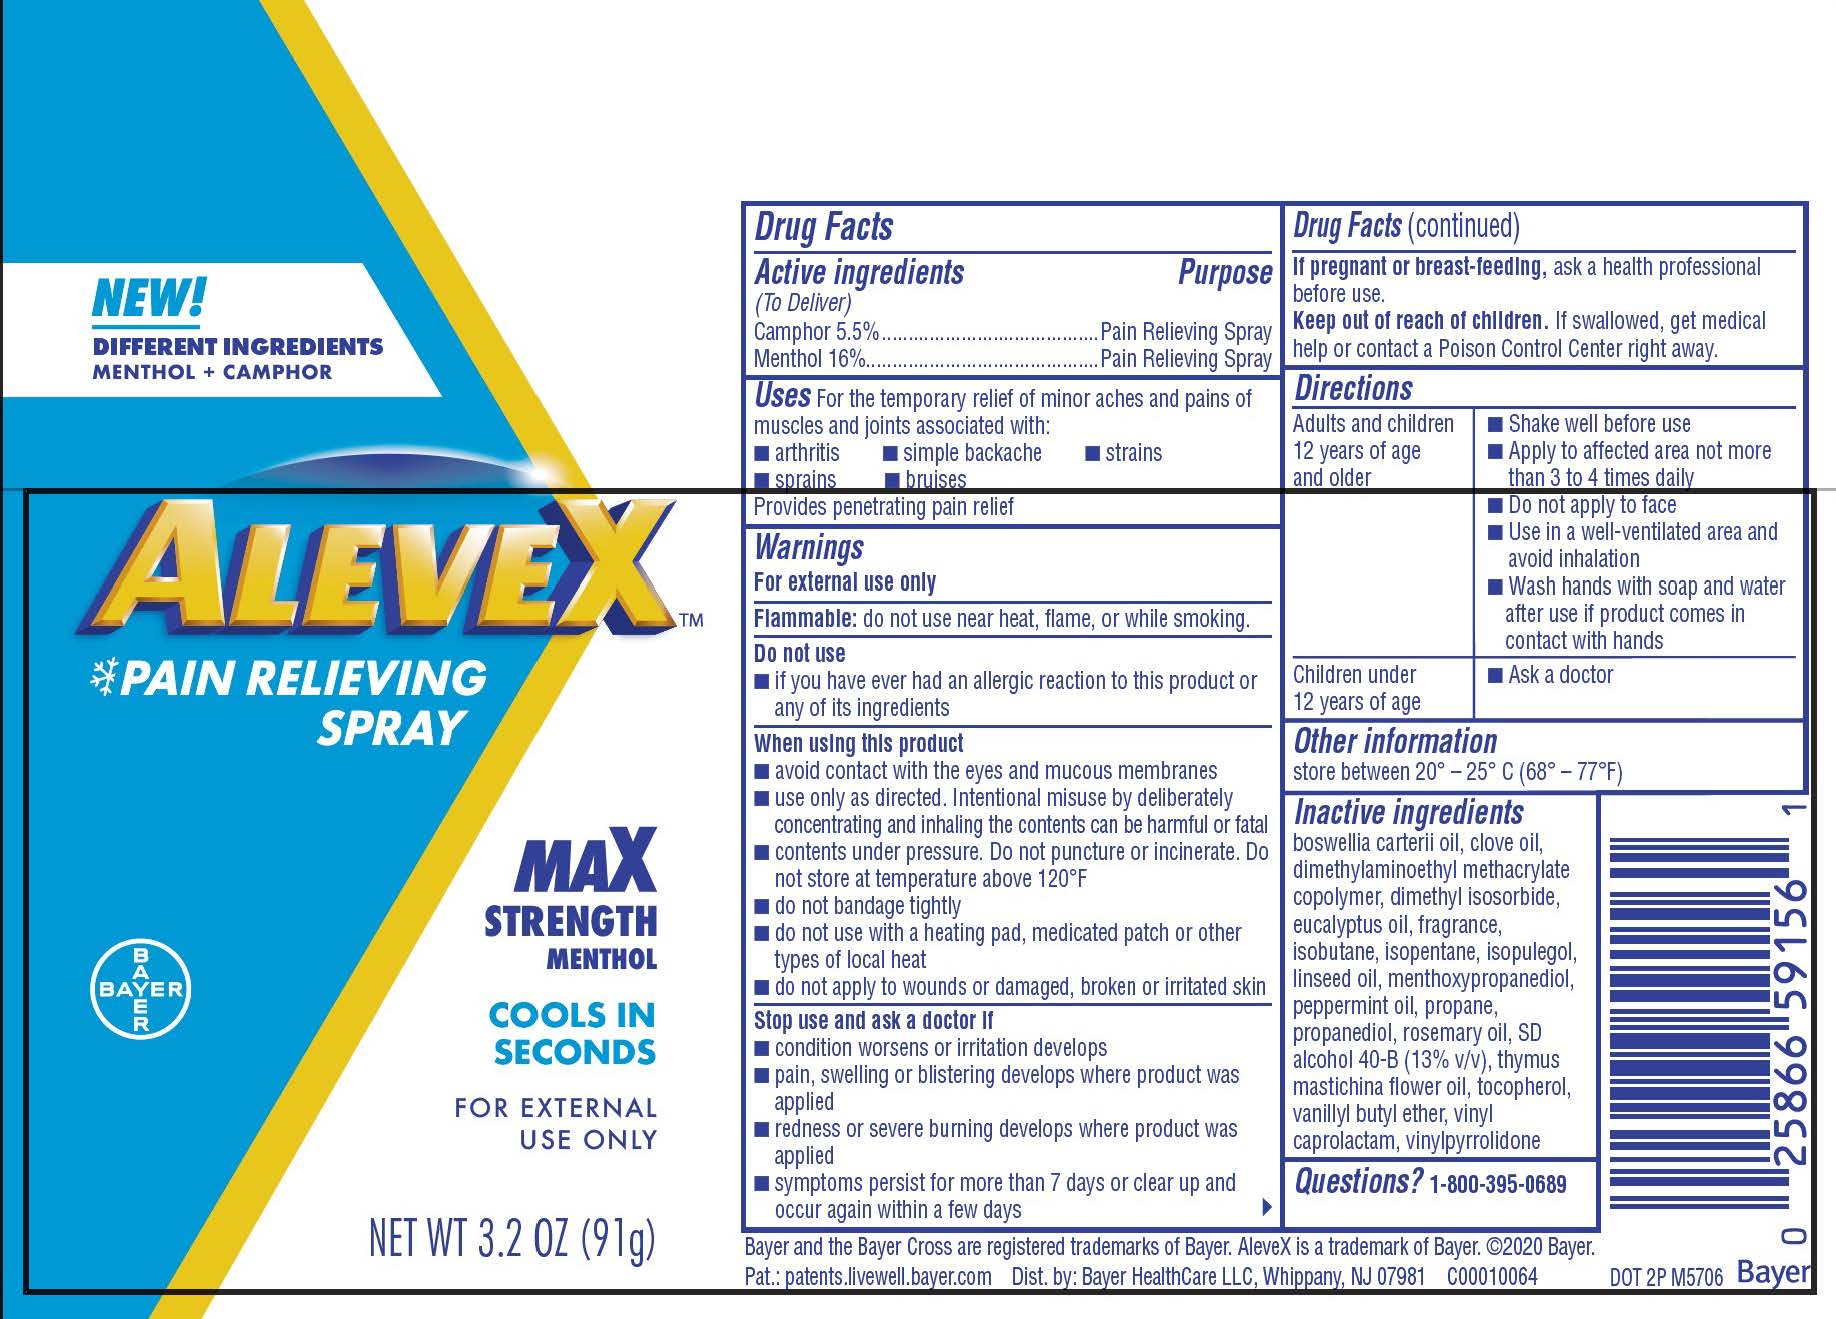 AleveX Dry Spray label